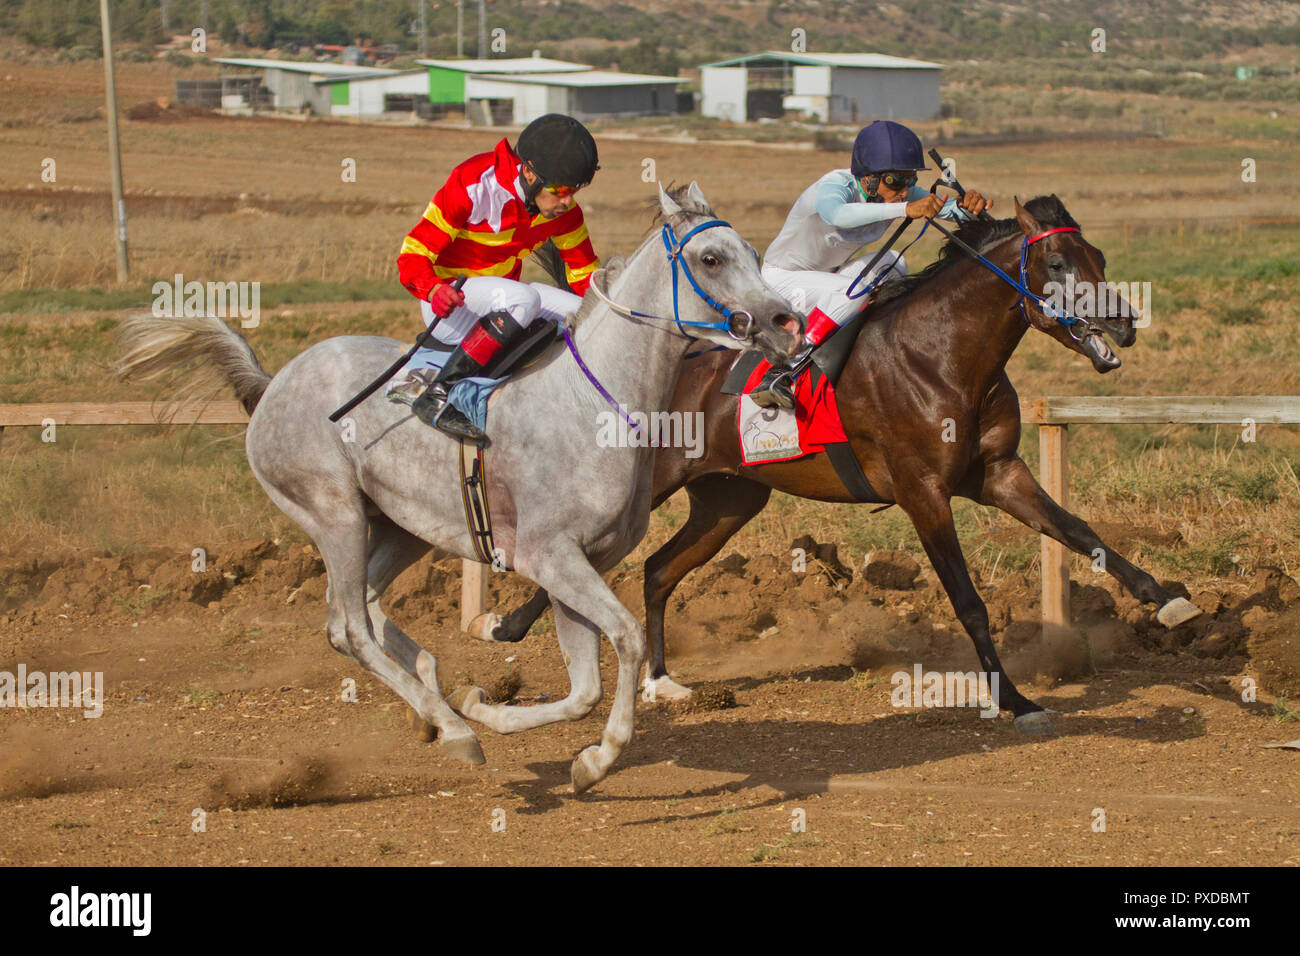 Arabian Horse In A Race With Bedouin Riders Stock Photo Alamy